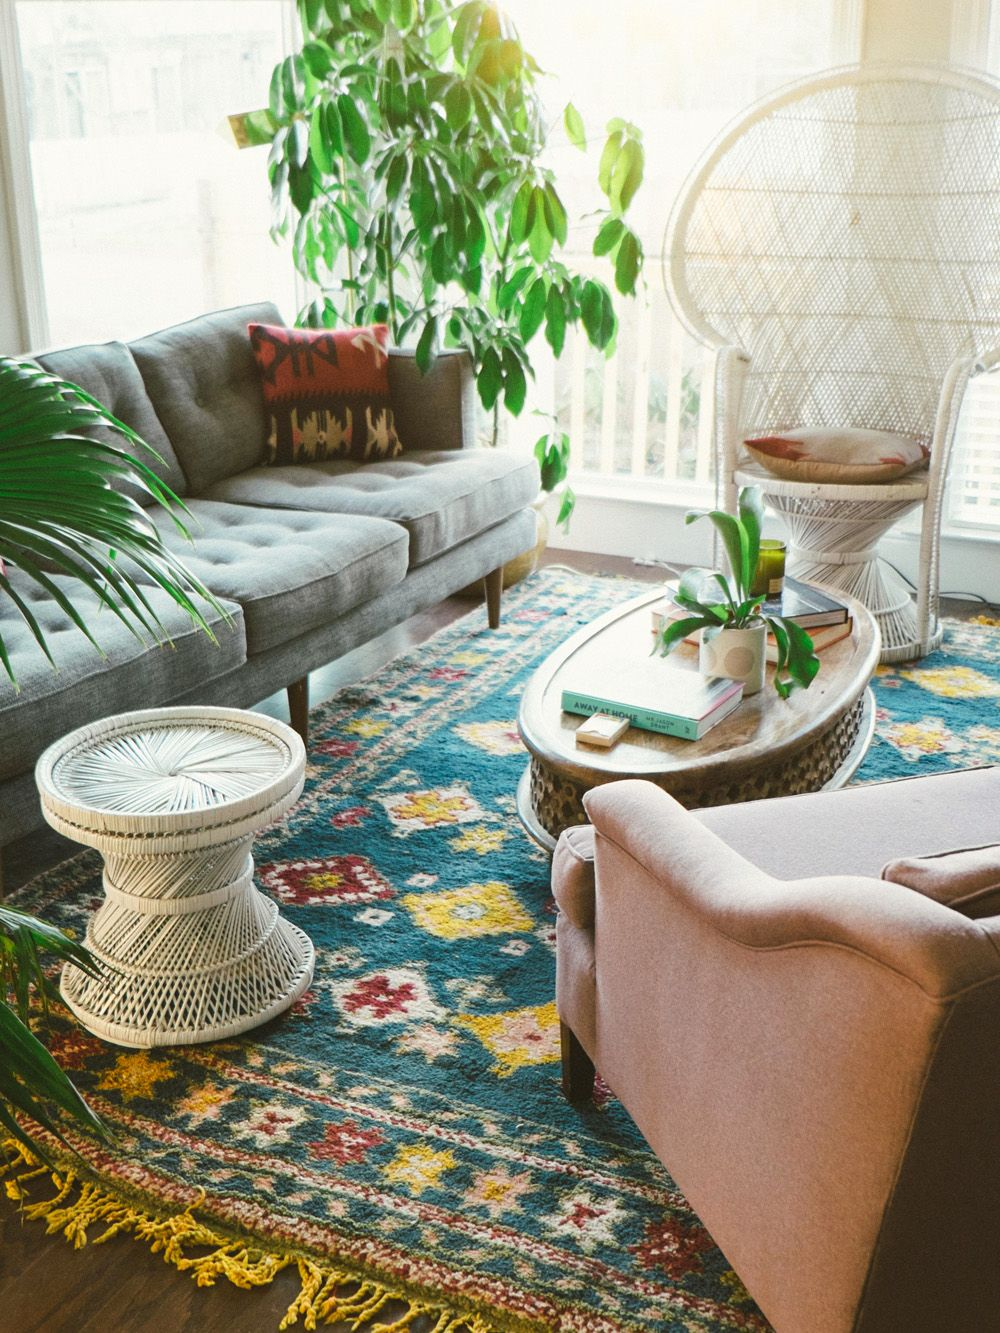 Vintage Peacock Chair And Moroccan Rug Bohemian ★ Home